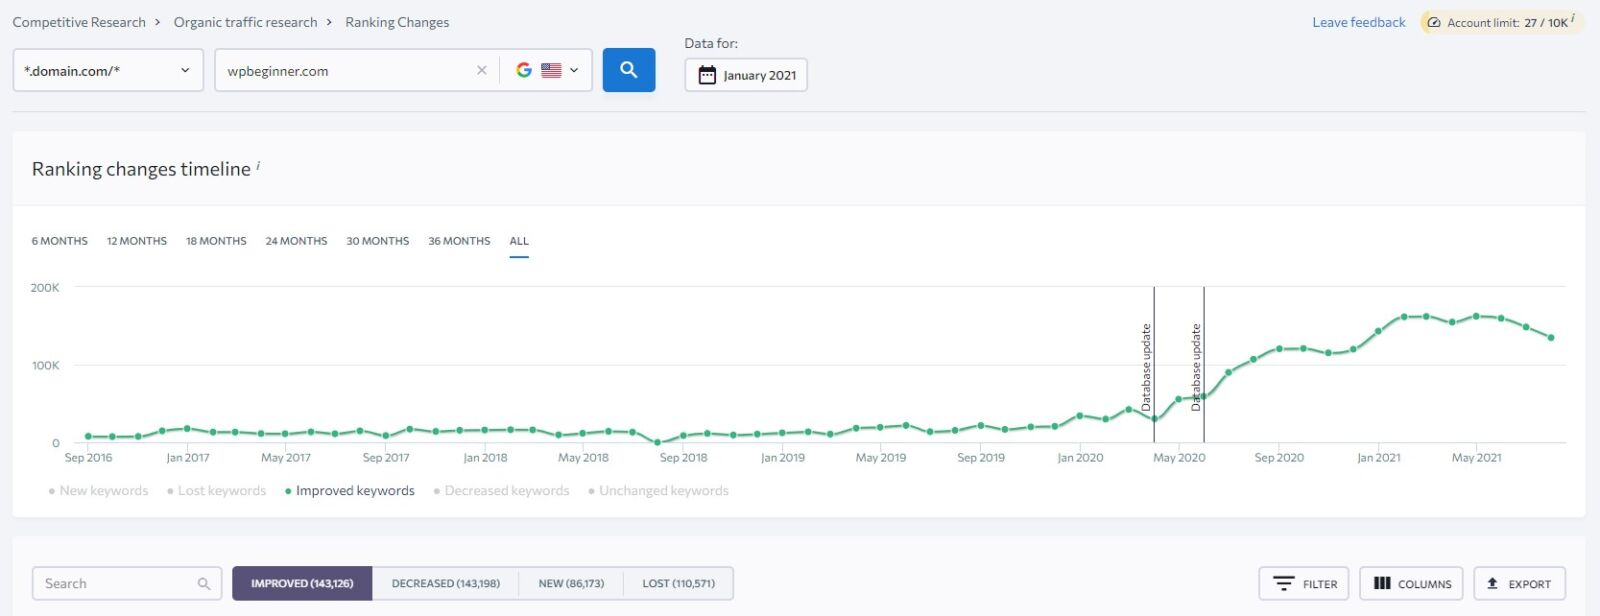 ranking changes timeline for competitor seo keywords